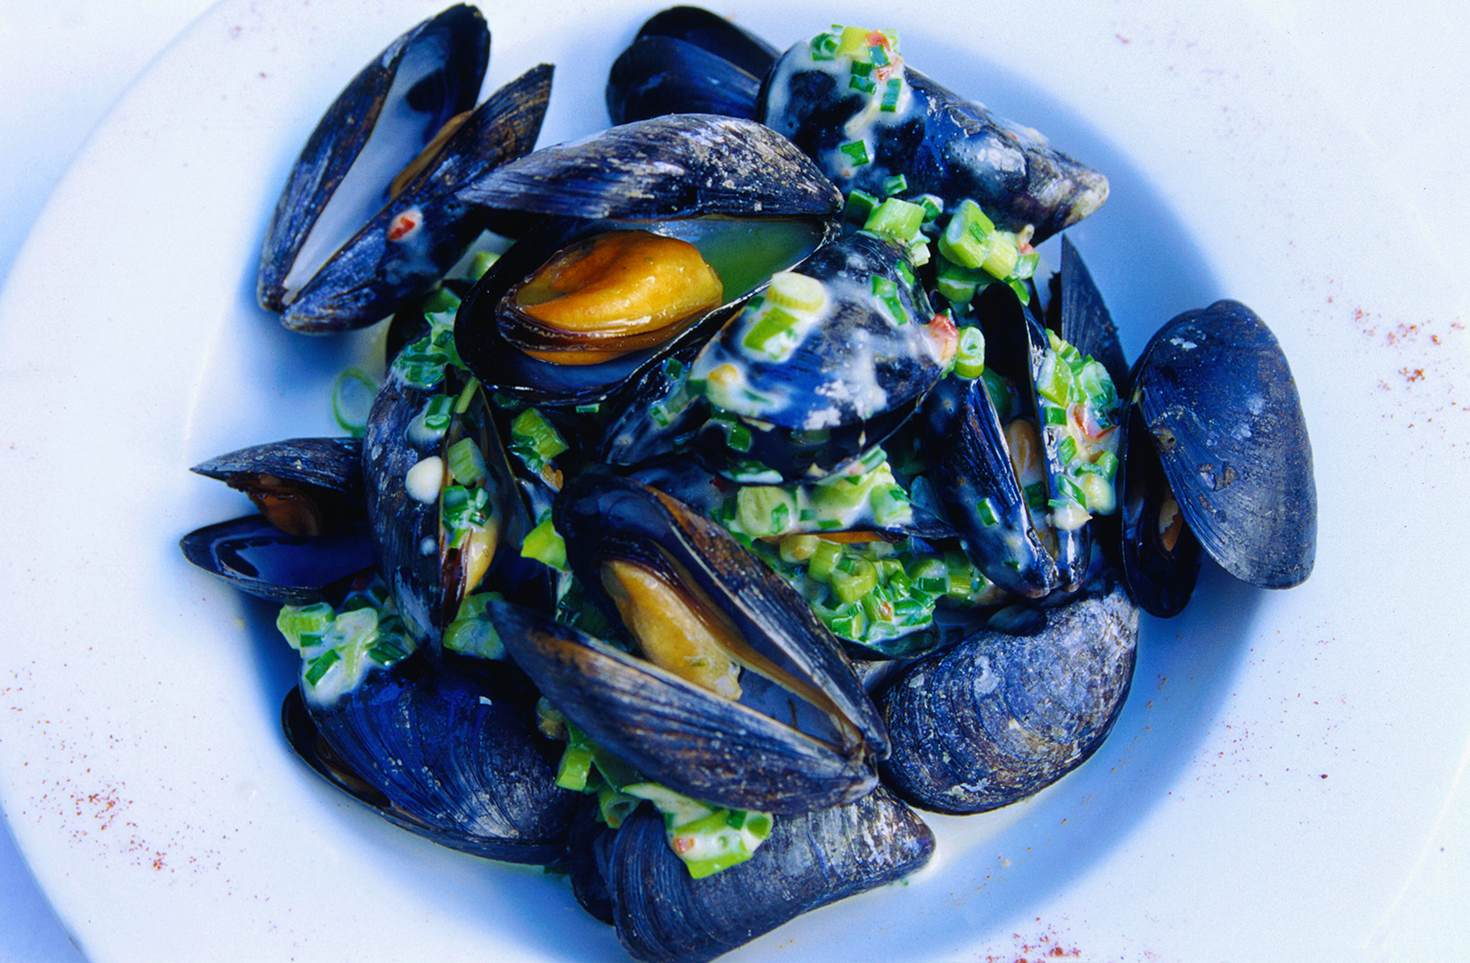 Creative cuisine at Kirwan's Lane Restaurant: Irish mussels with lemongrass, coriander and fresh chives